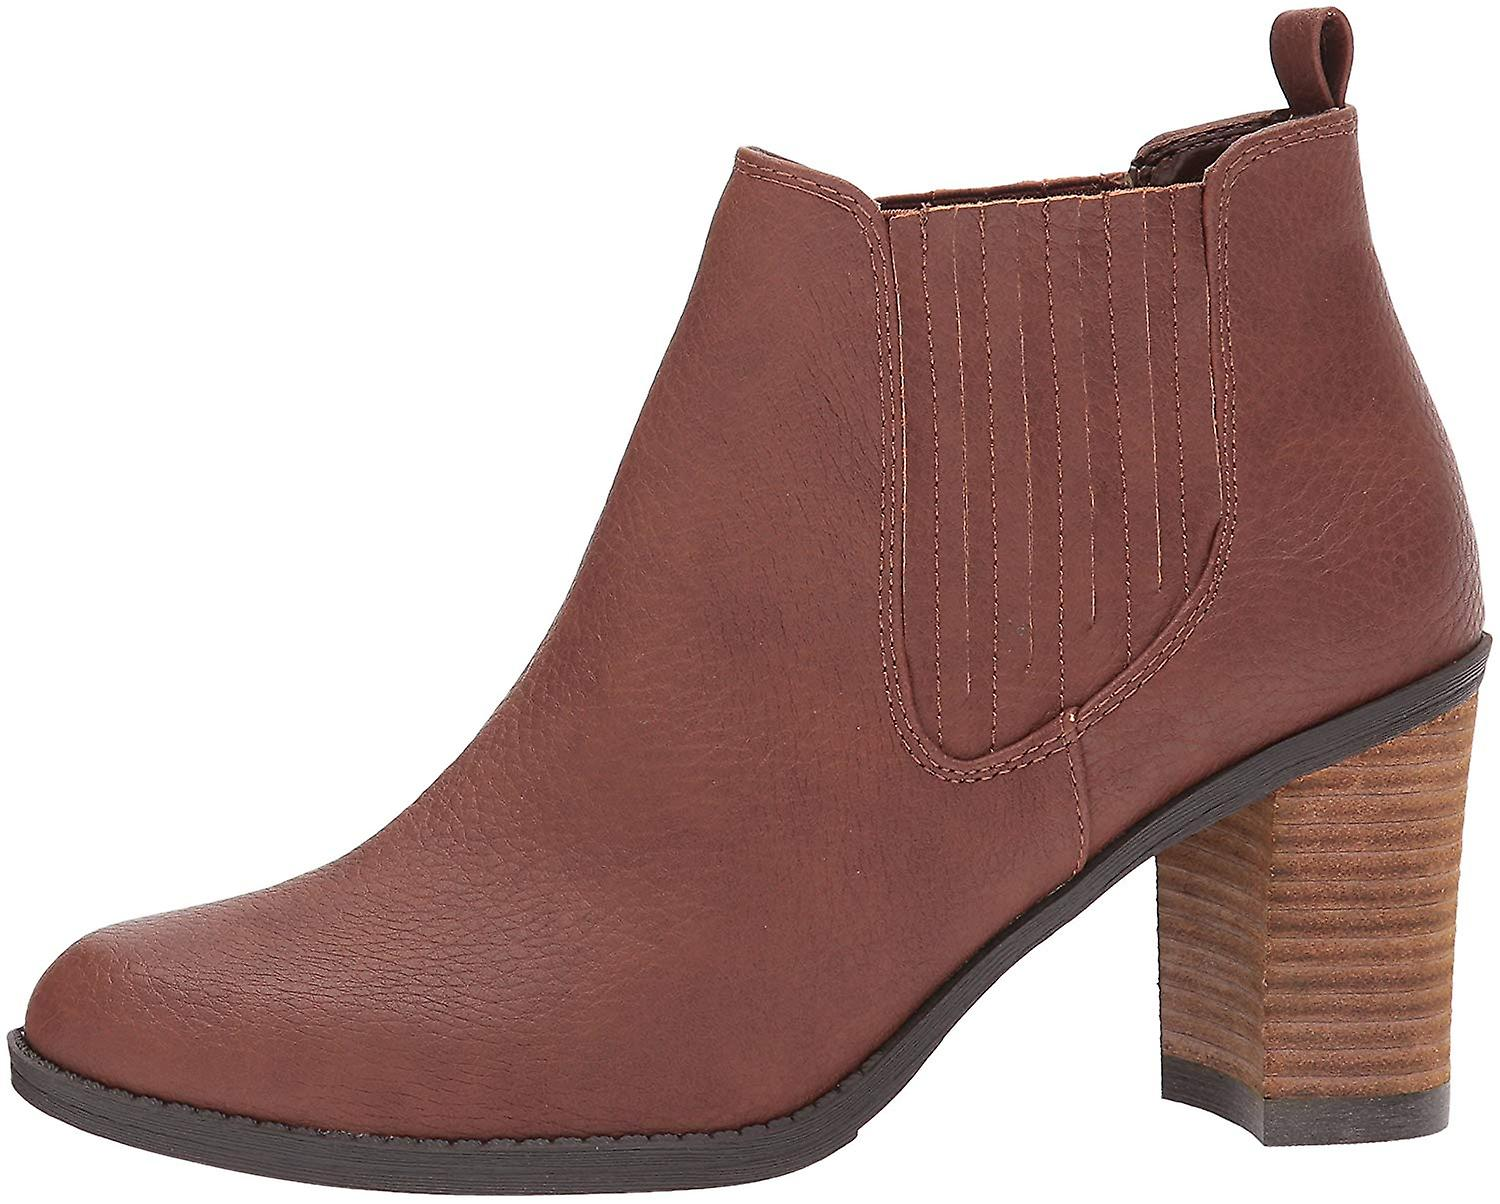 Dr. Scholl's Shoes Women's Launch Boot yMQf2